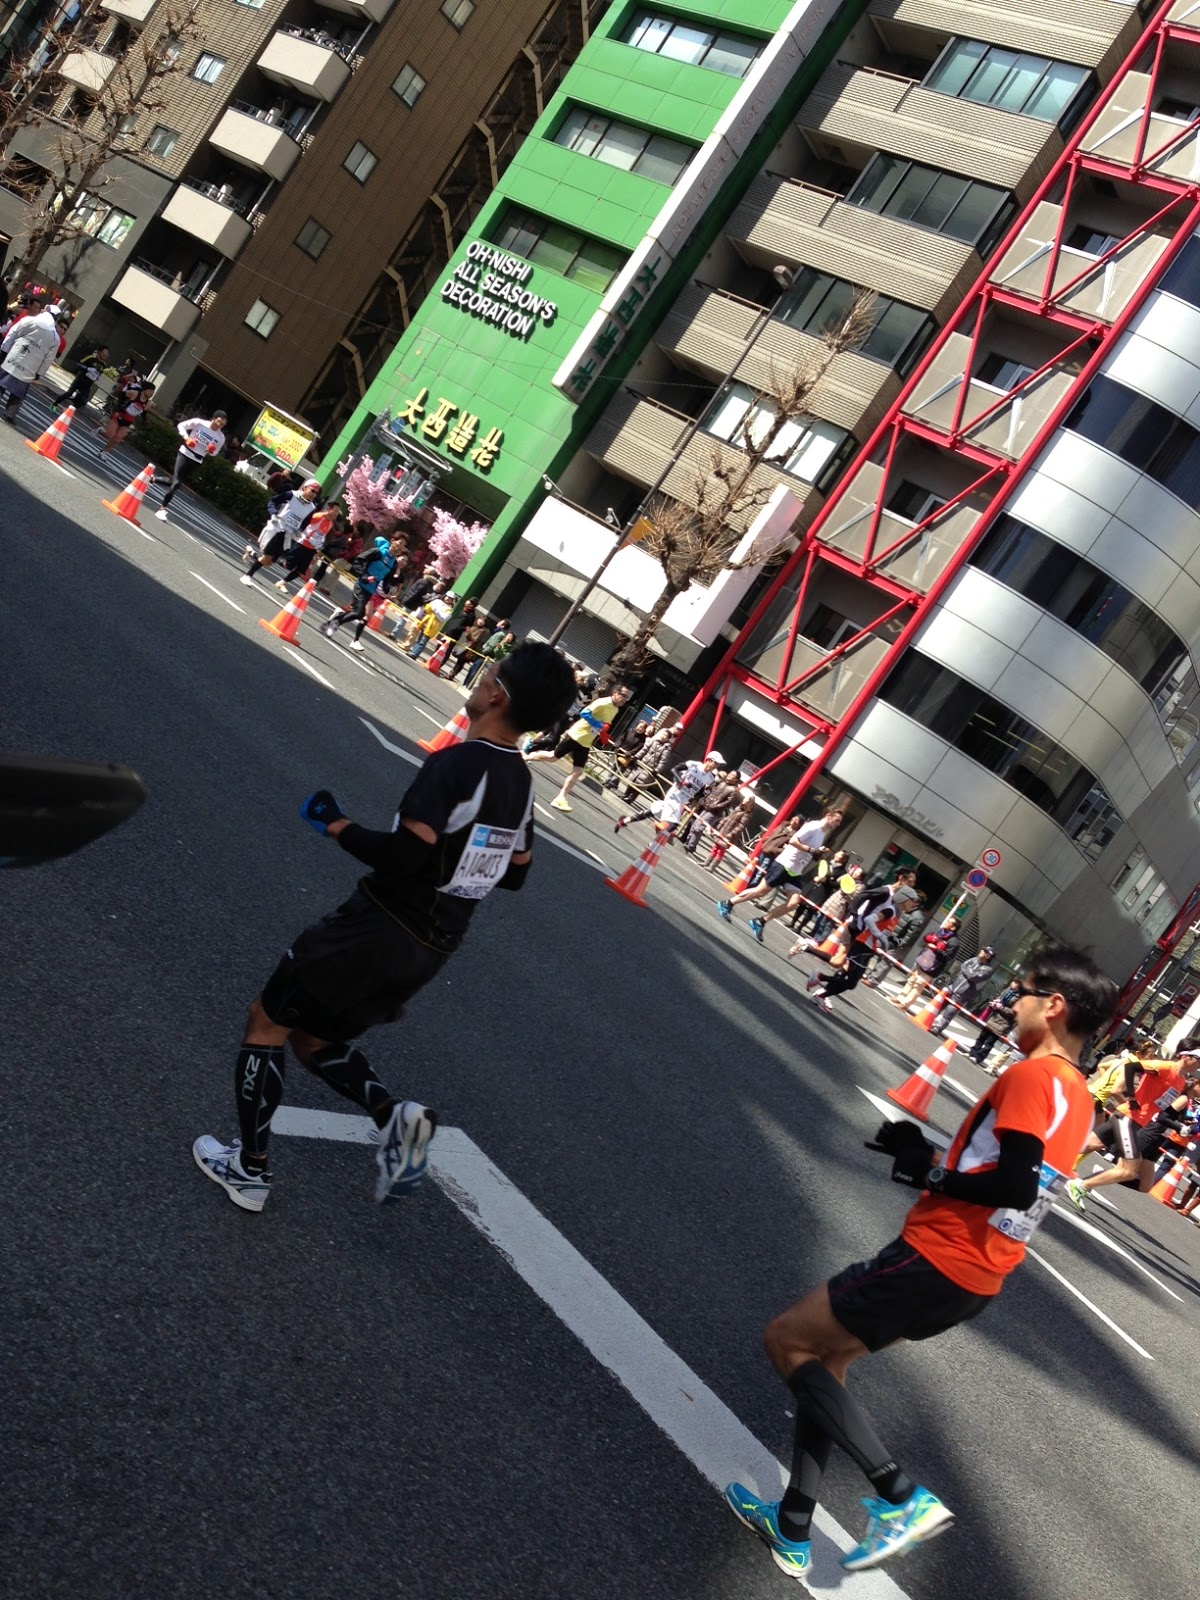 2013 Tokyo Marathon, Asakusabashi leg.